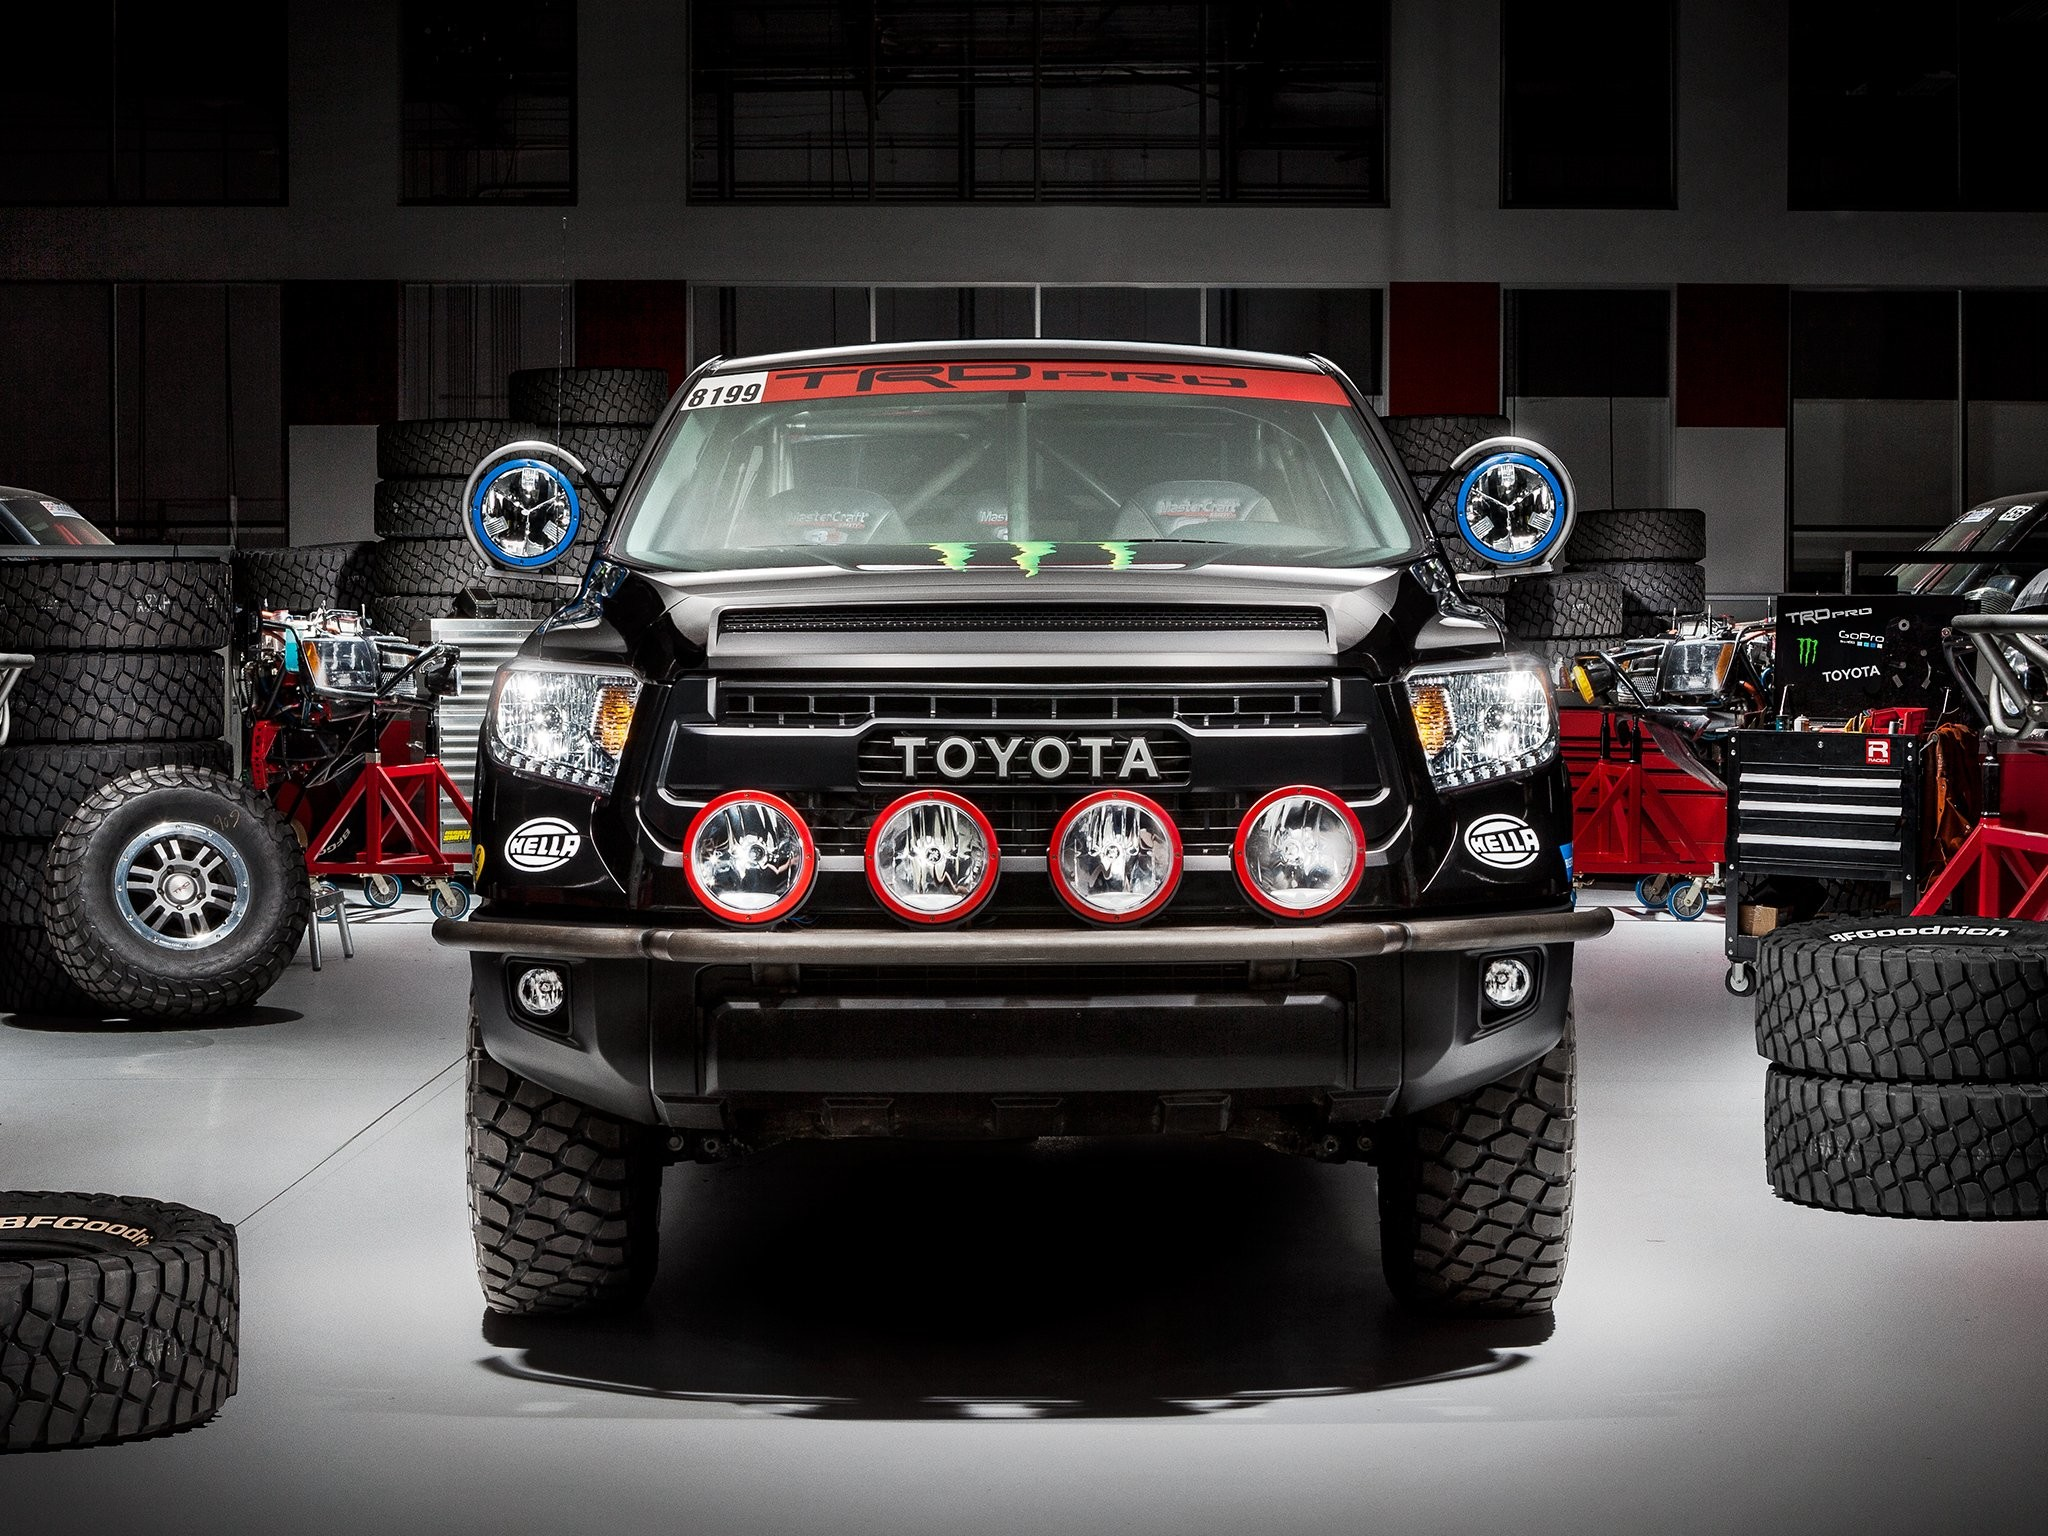 Res: 2048x1536, 2014 TRD Toyota Tundra Pro Baja offroad race racing pickup 4x4 wallpaper |   | 424121 | WallpaperUP